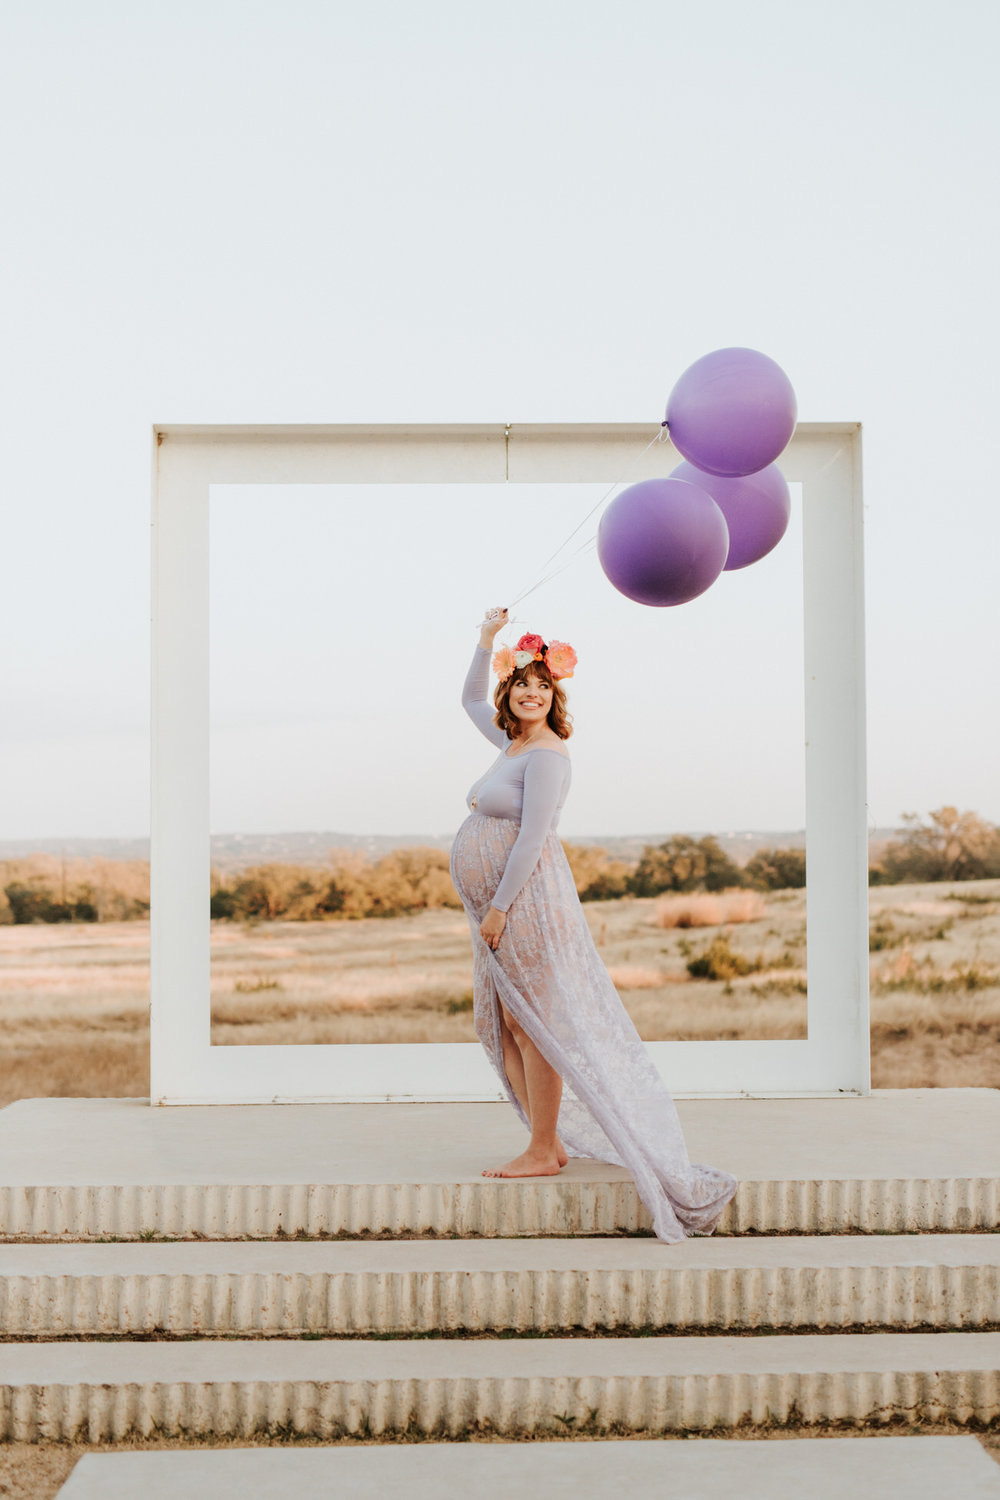 Beautiful pregnant woman at ultraviolet maternity shoot